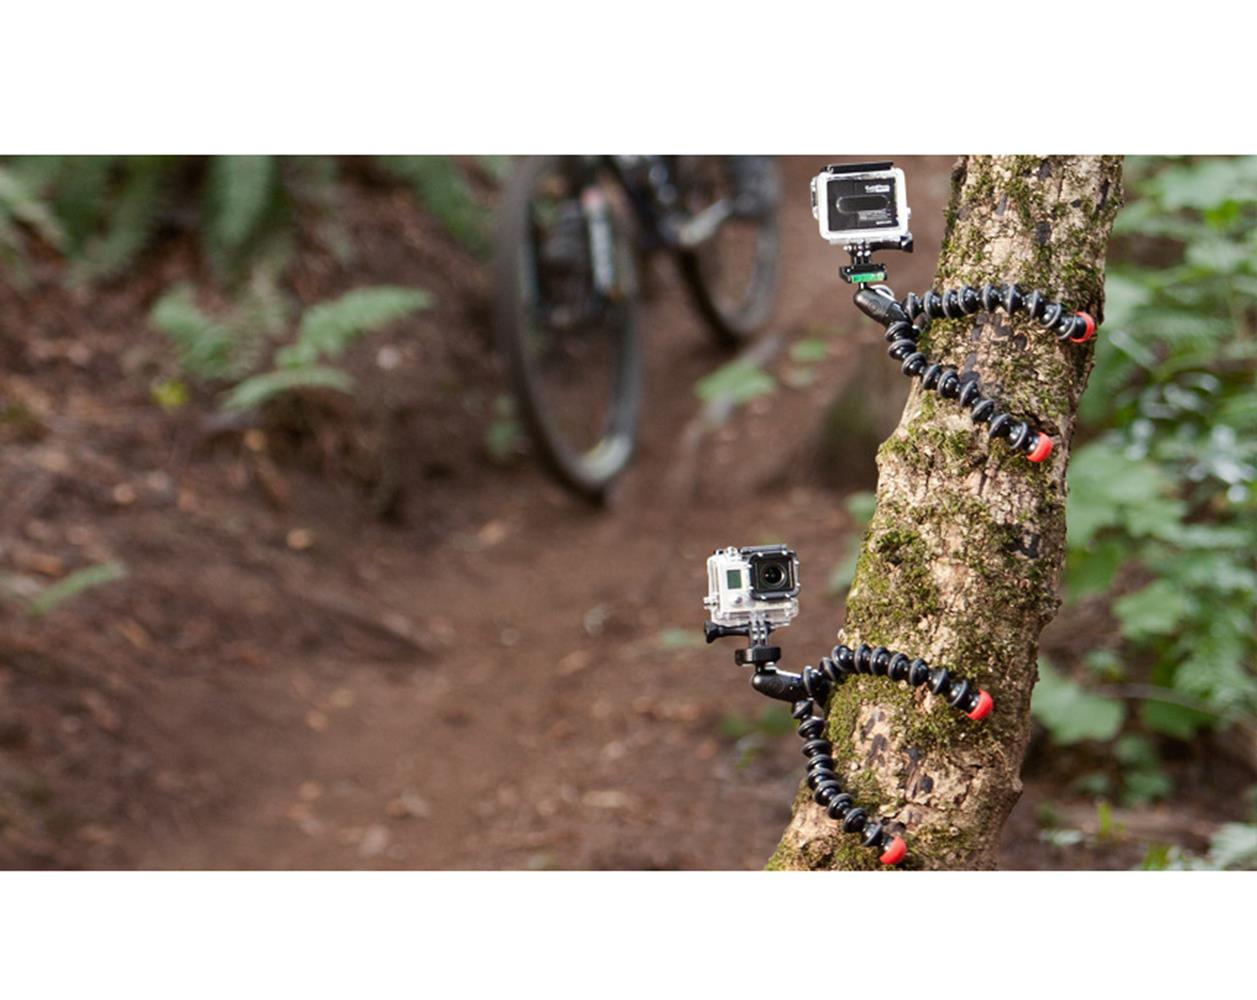 action-tripod-gopros-tree.jpg